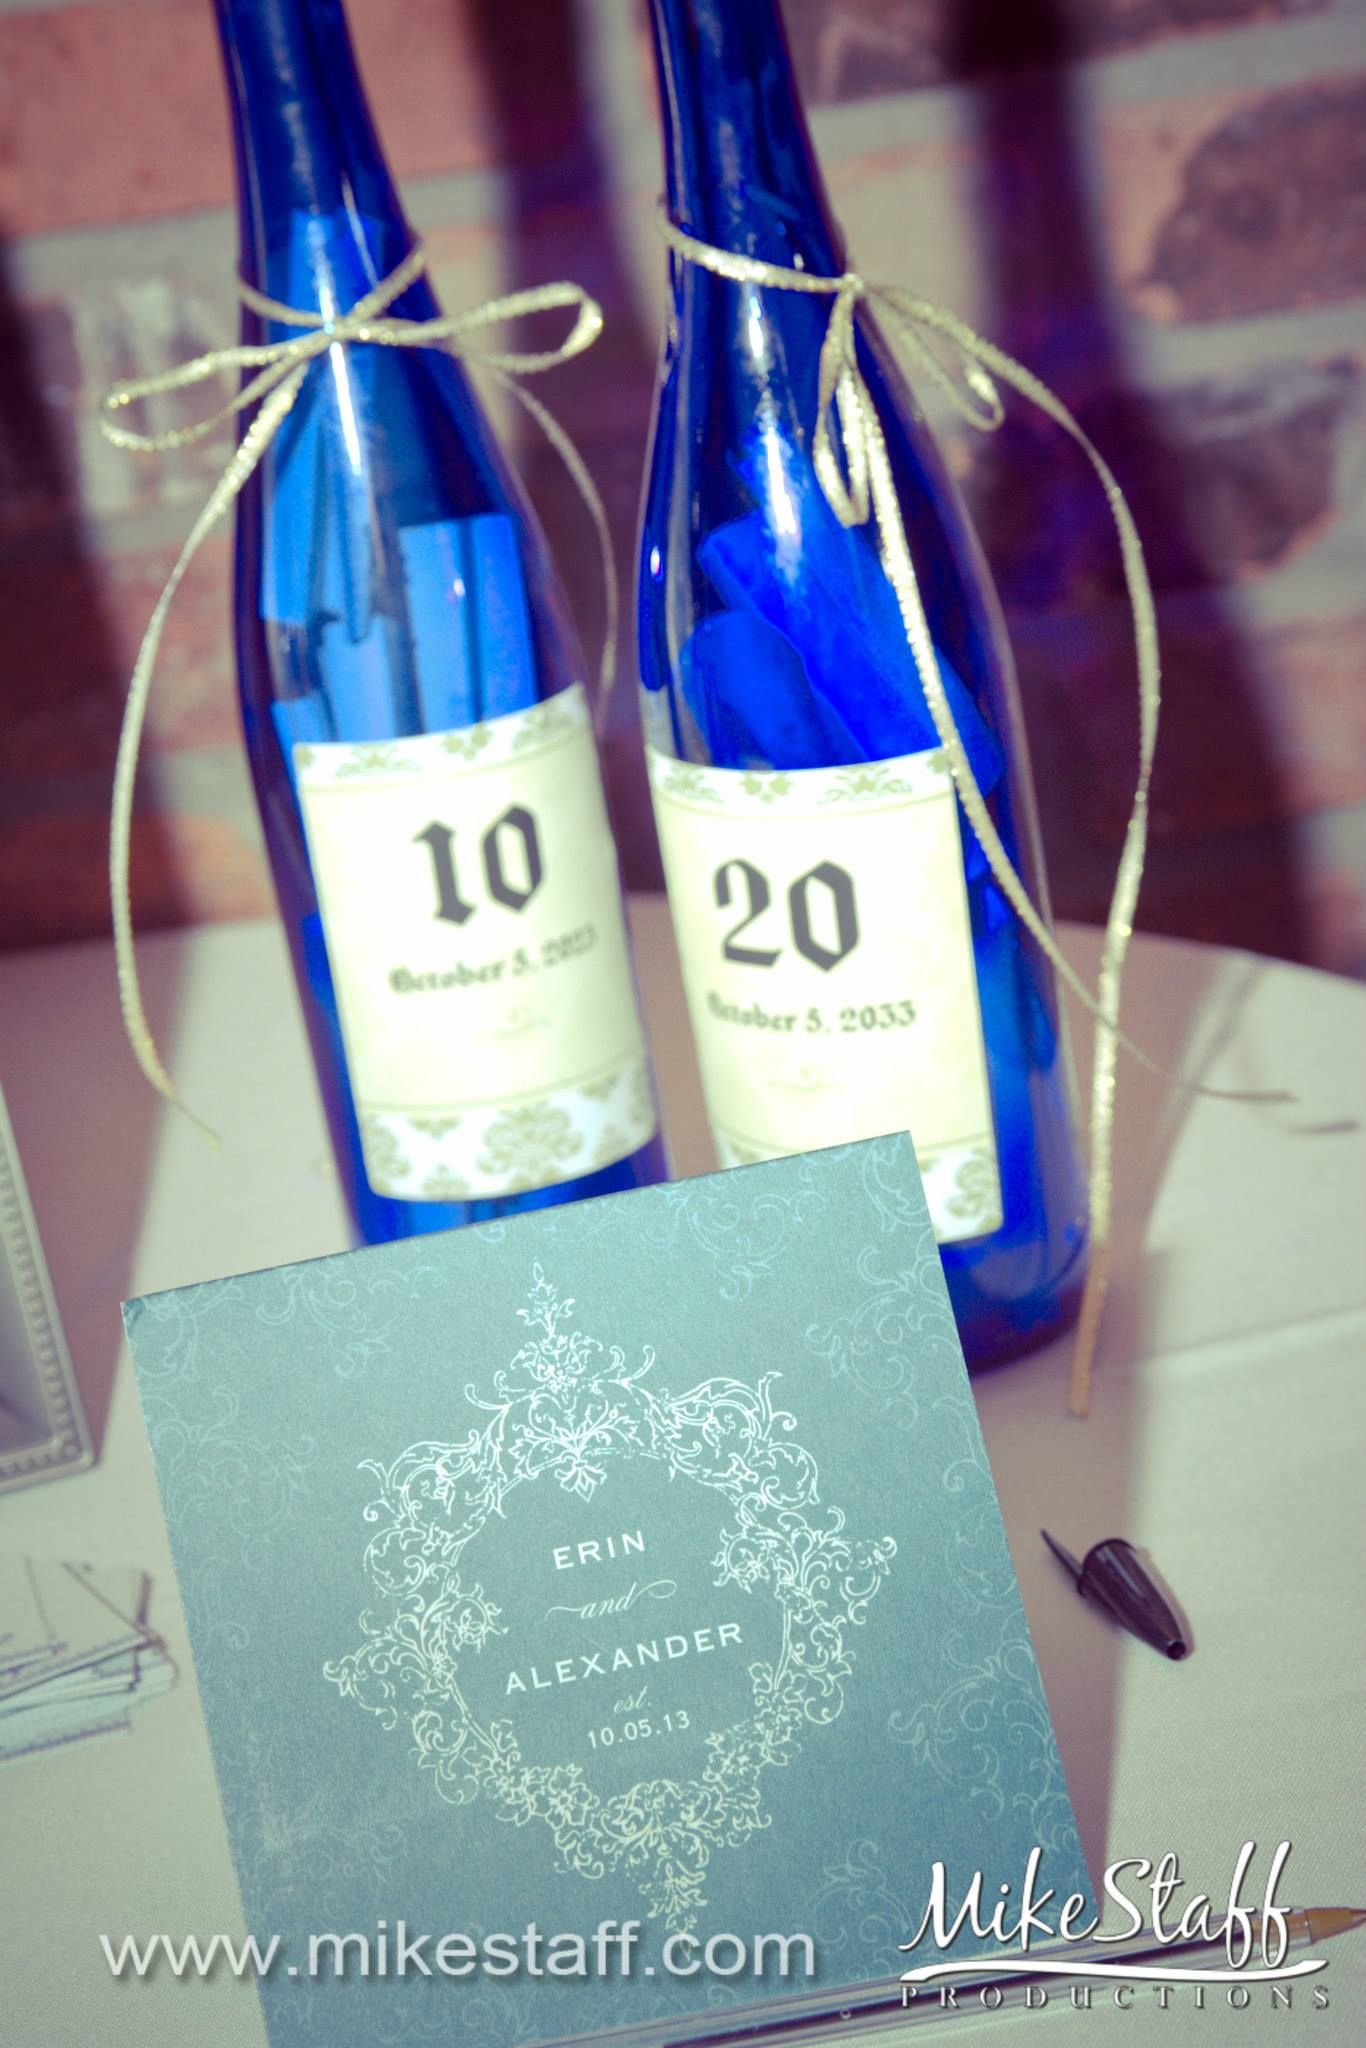 beauty and the beast wedding invitations and anniversary bottles